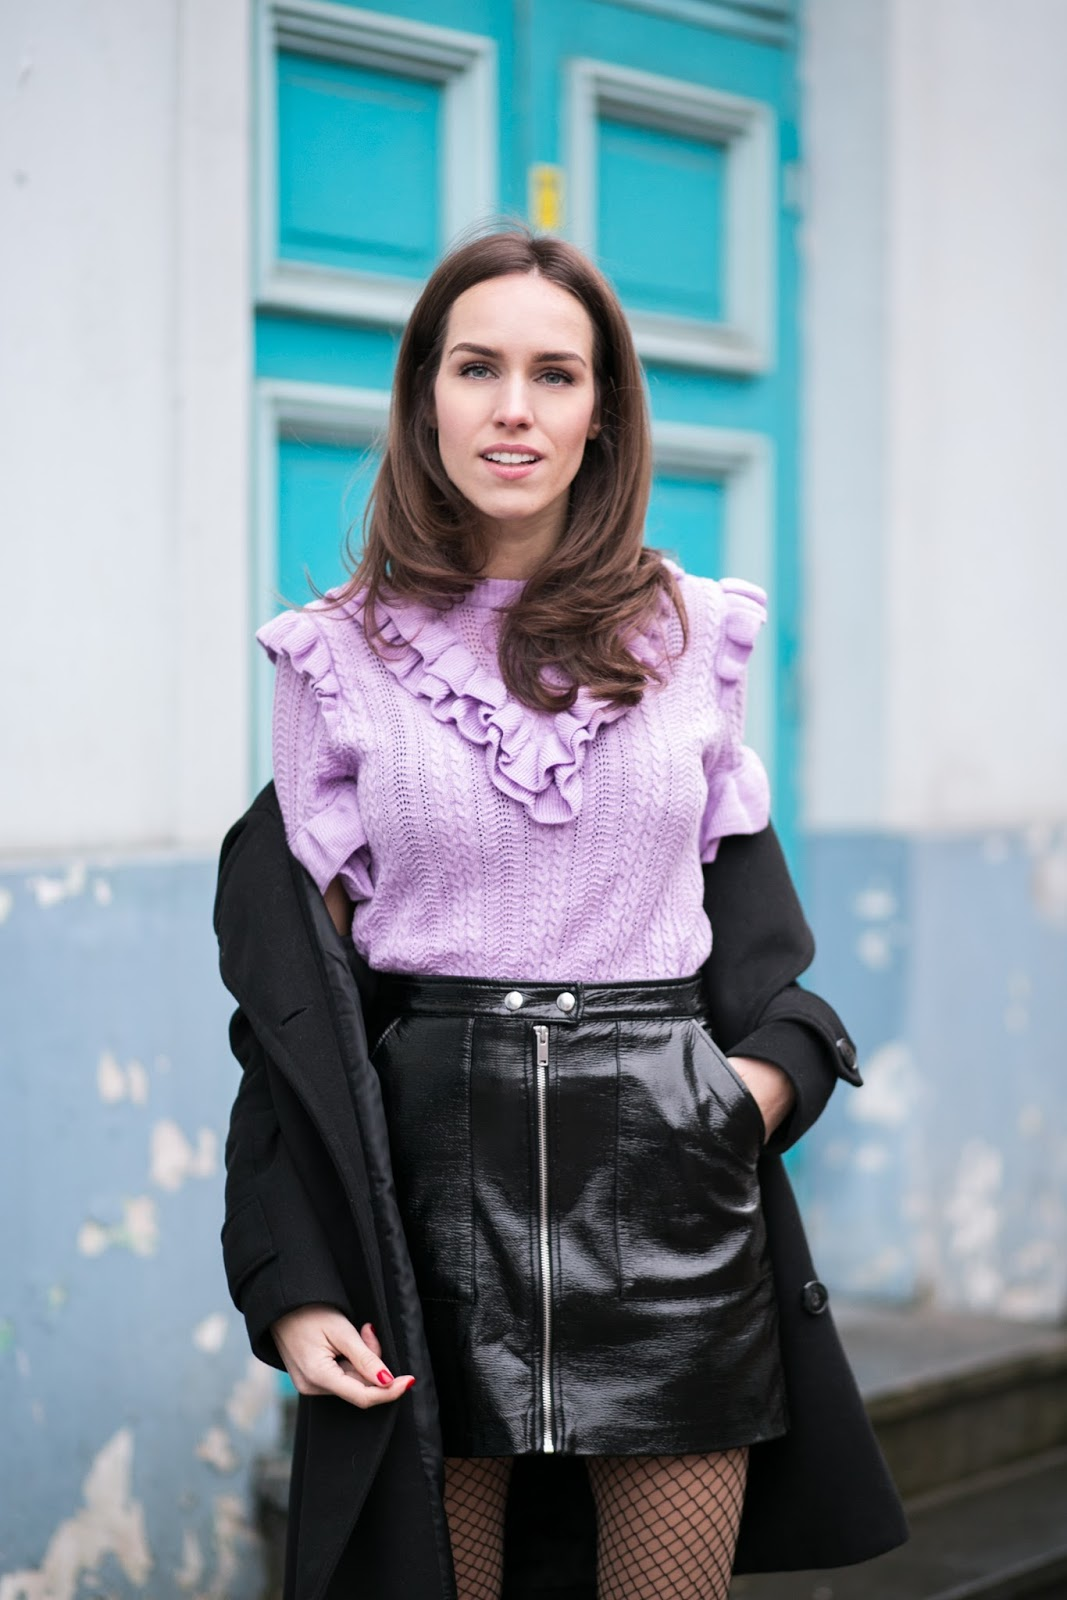 patent skirt ruffle top outfit